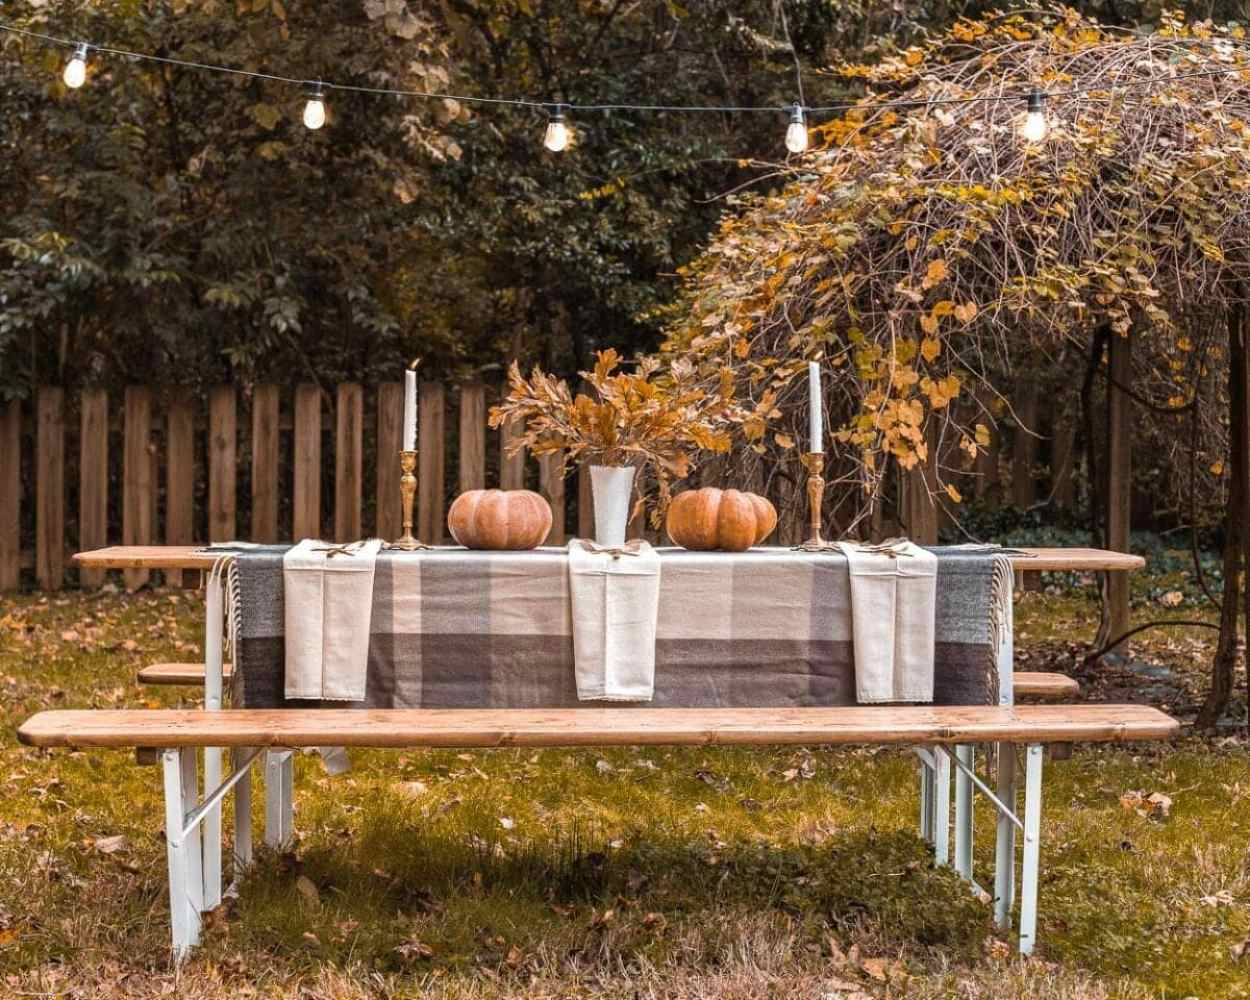 Outdoor beer garden table for Thanksgiving